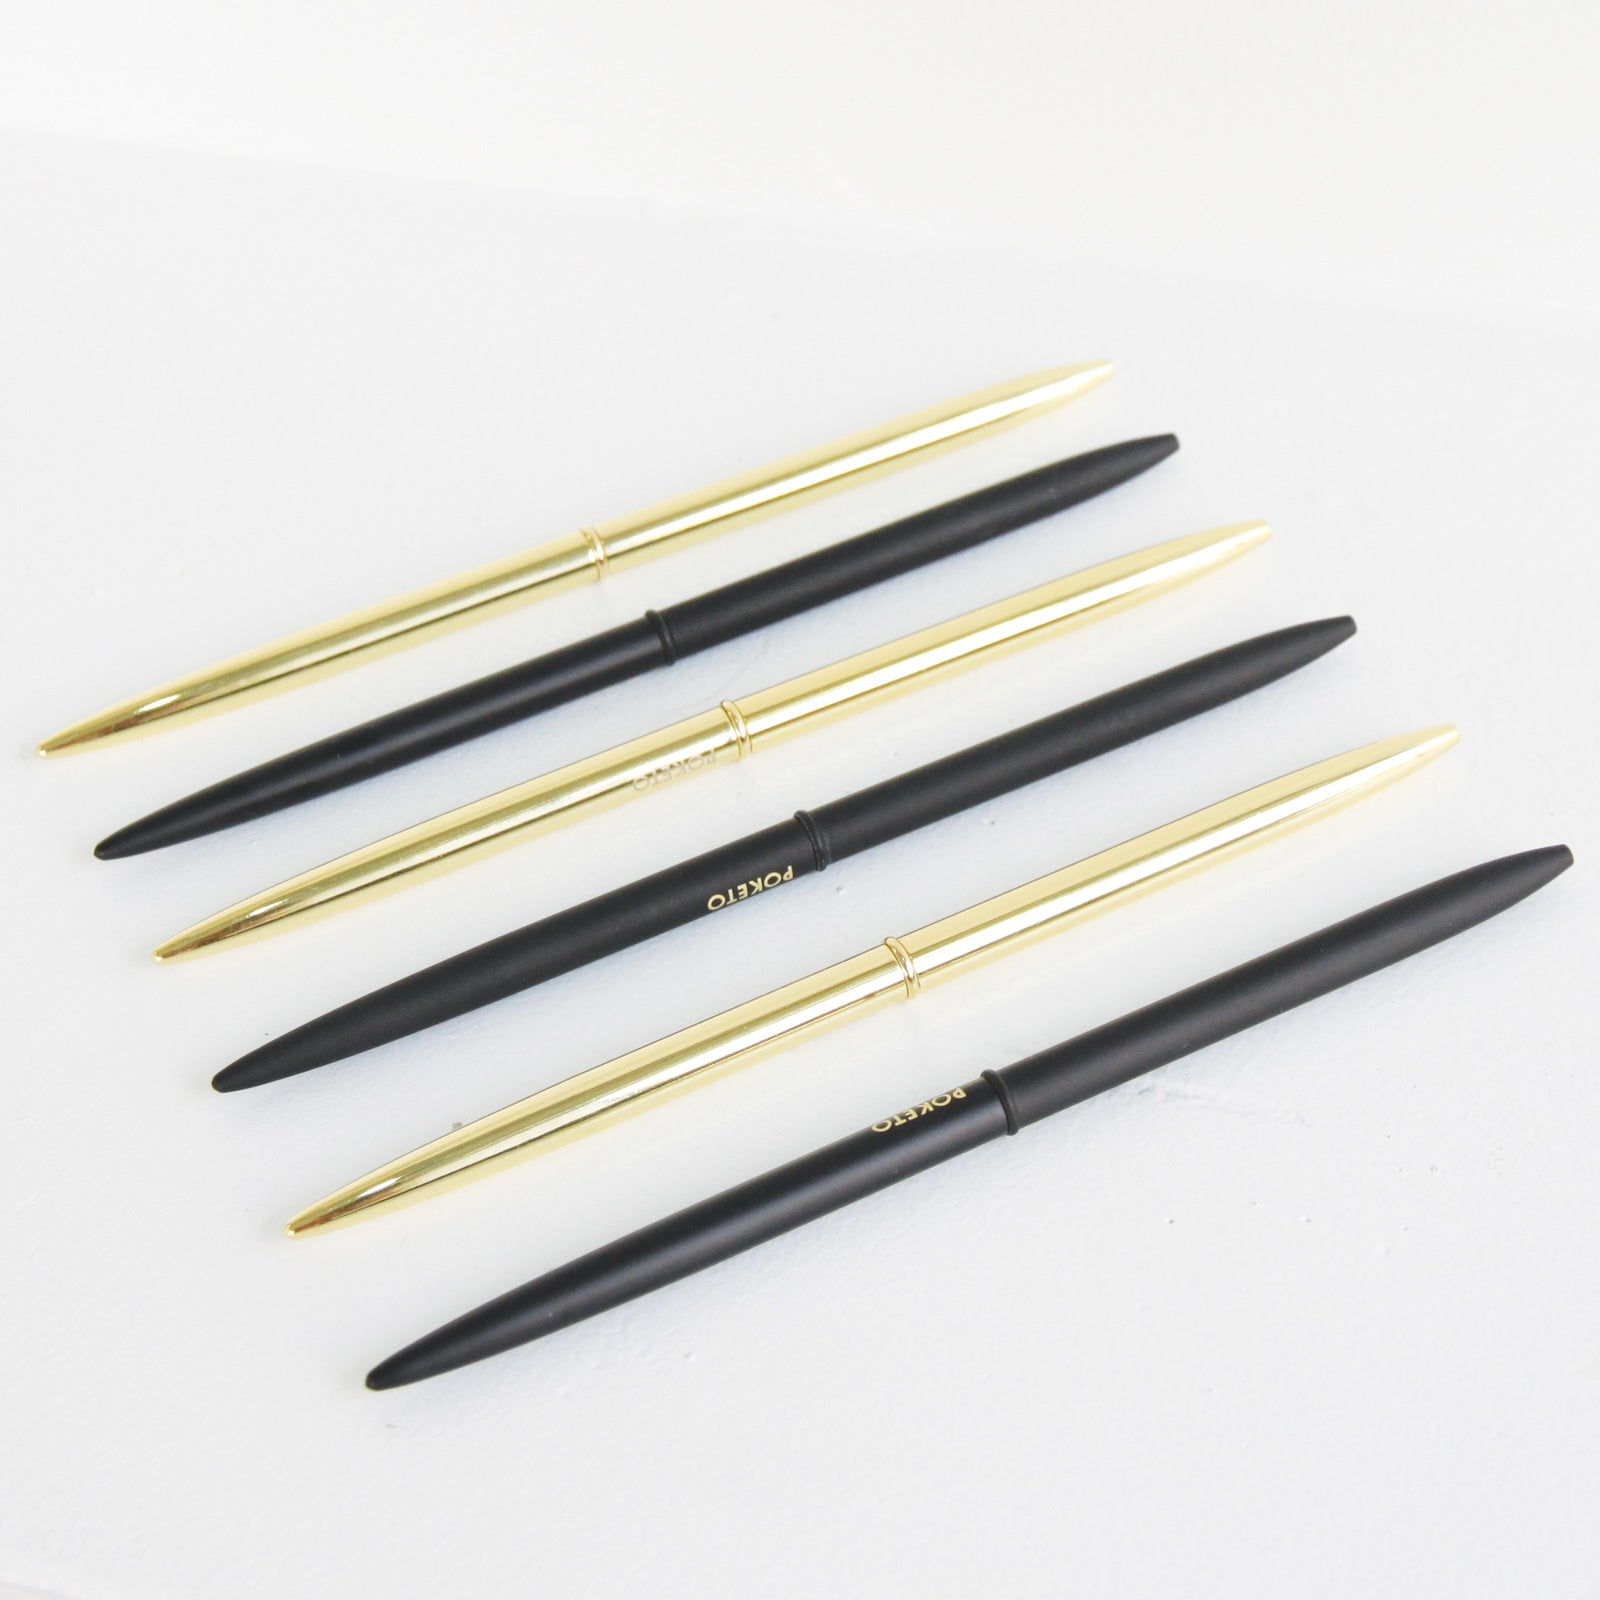 Slim Pen - Gold and Matte Black | Poketo | Los Angeles, CA at Sustain - Gallery and Shop - Chicago, IL